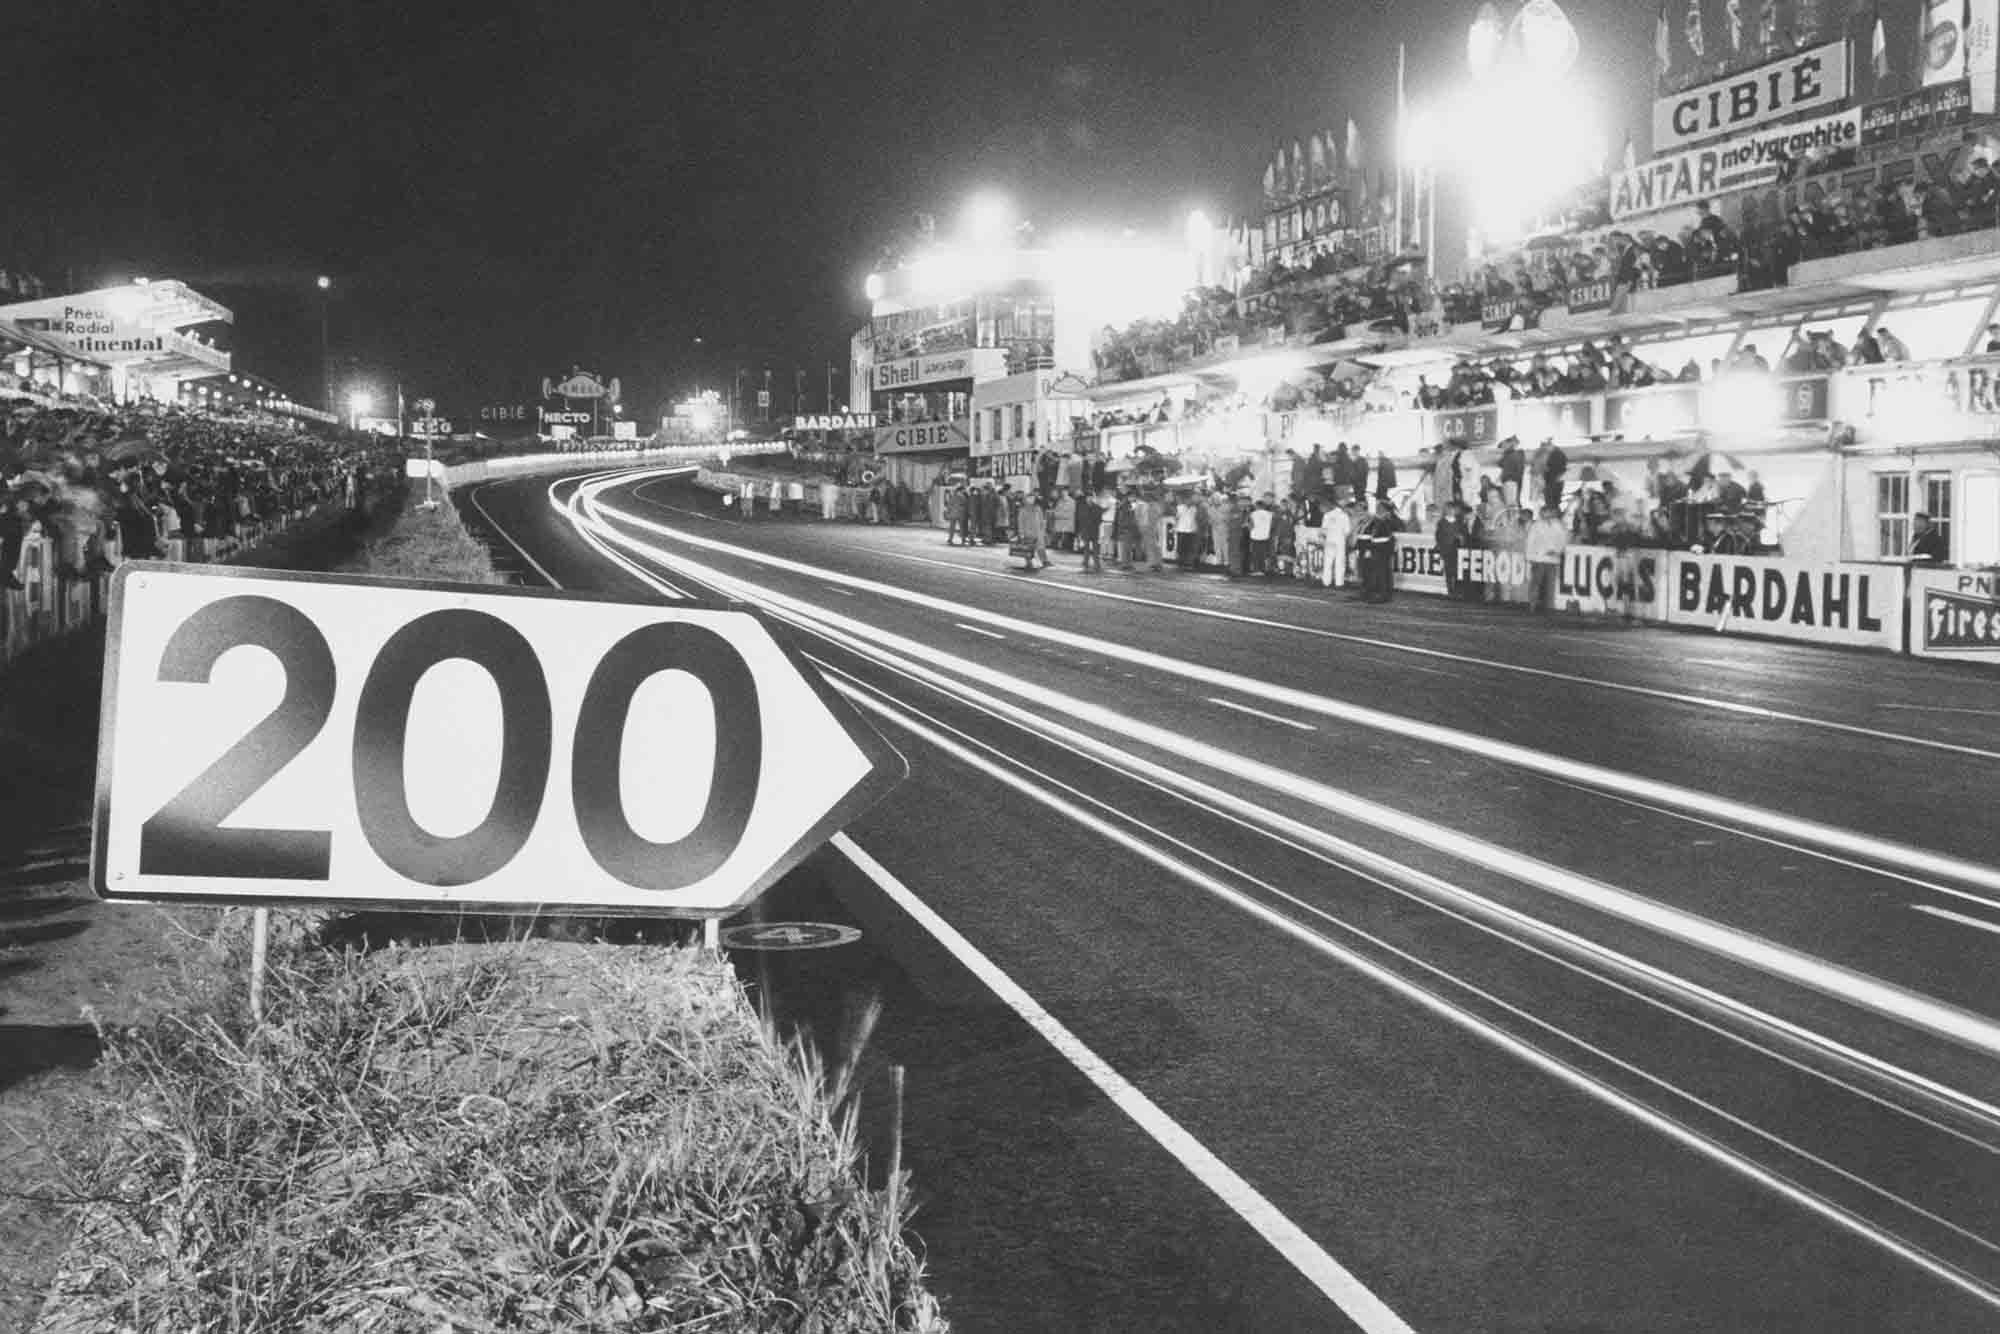 The 1966 Le Mans start/finish straight at night